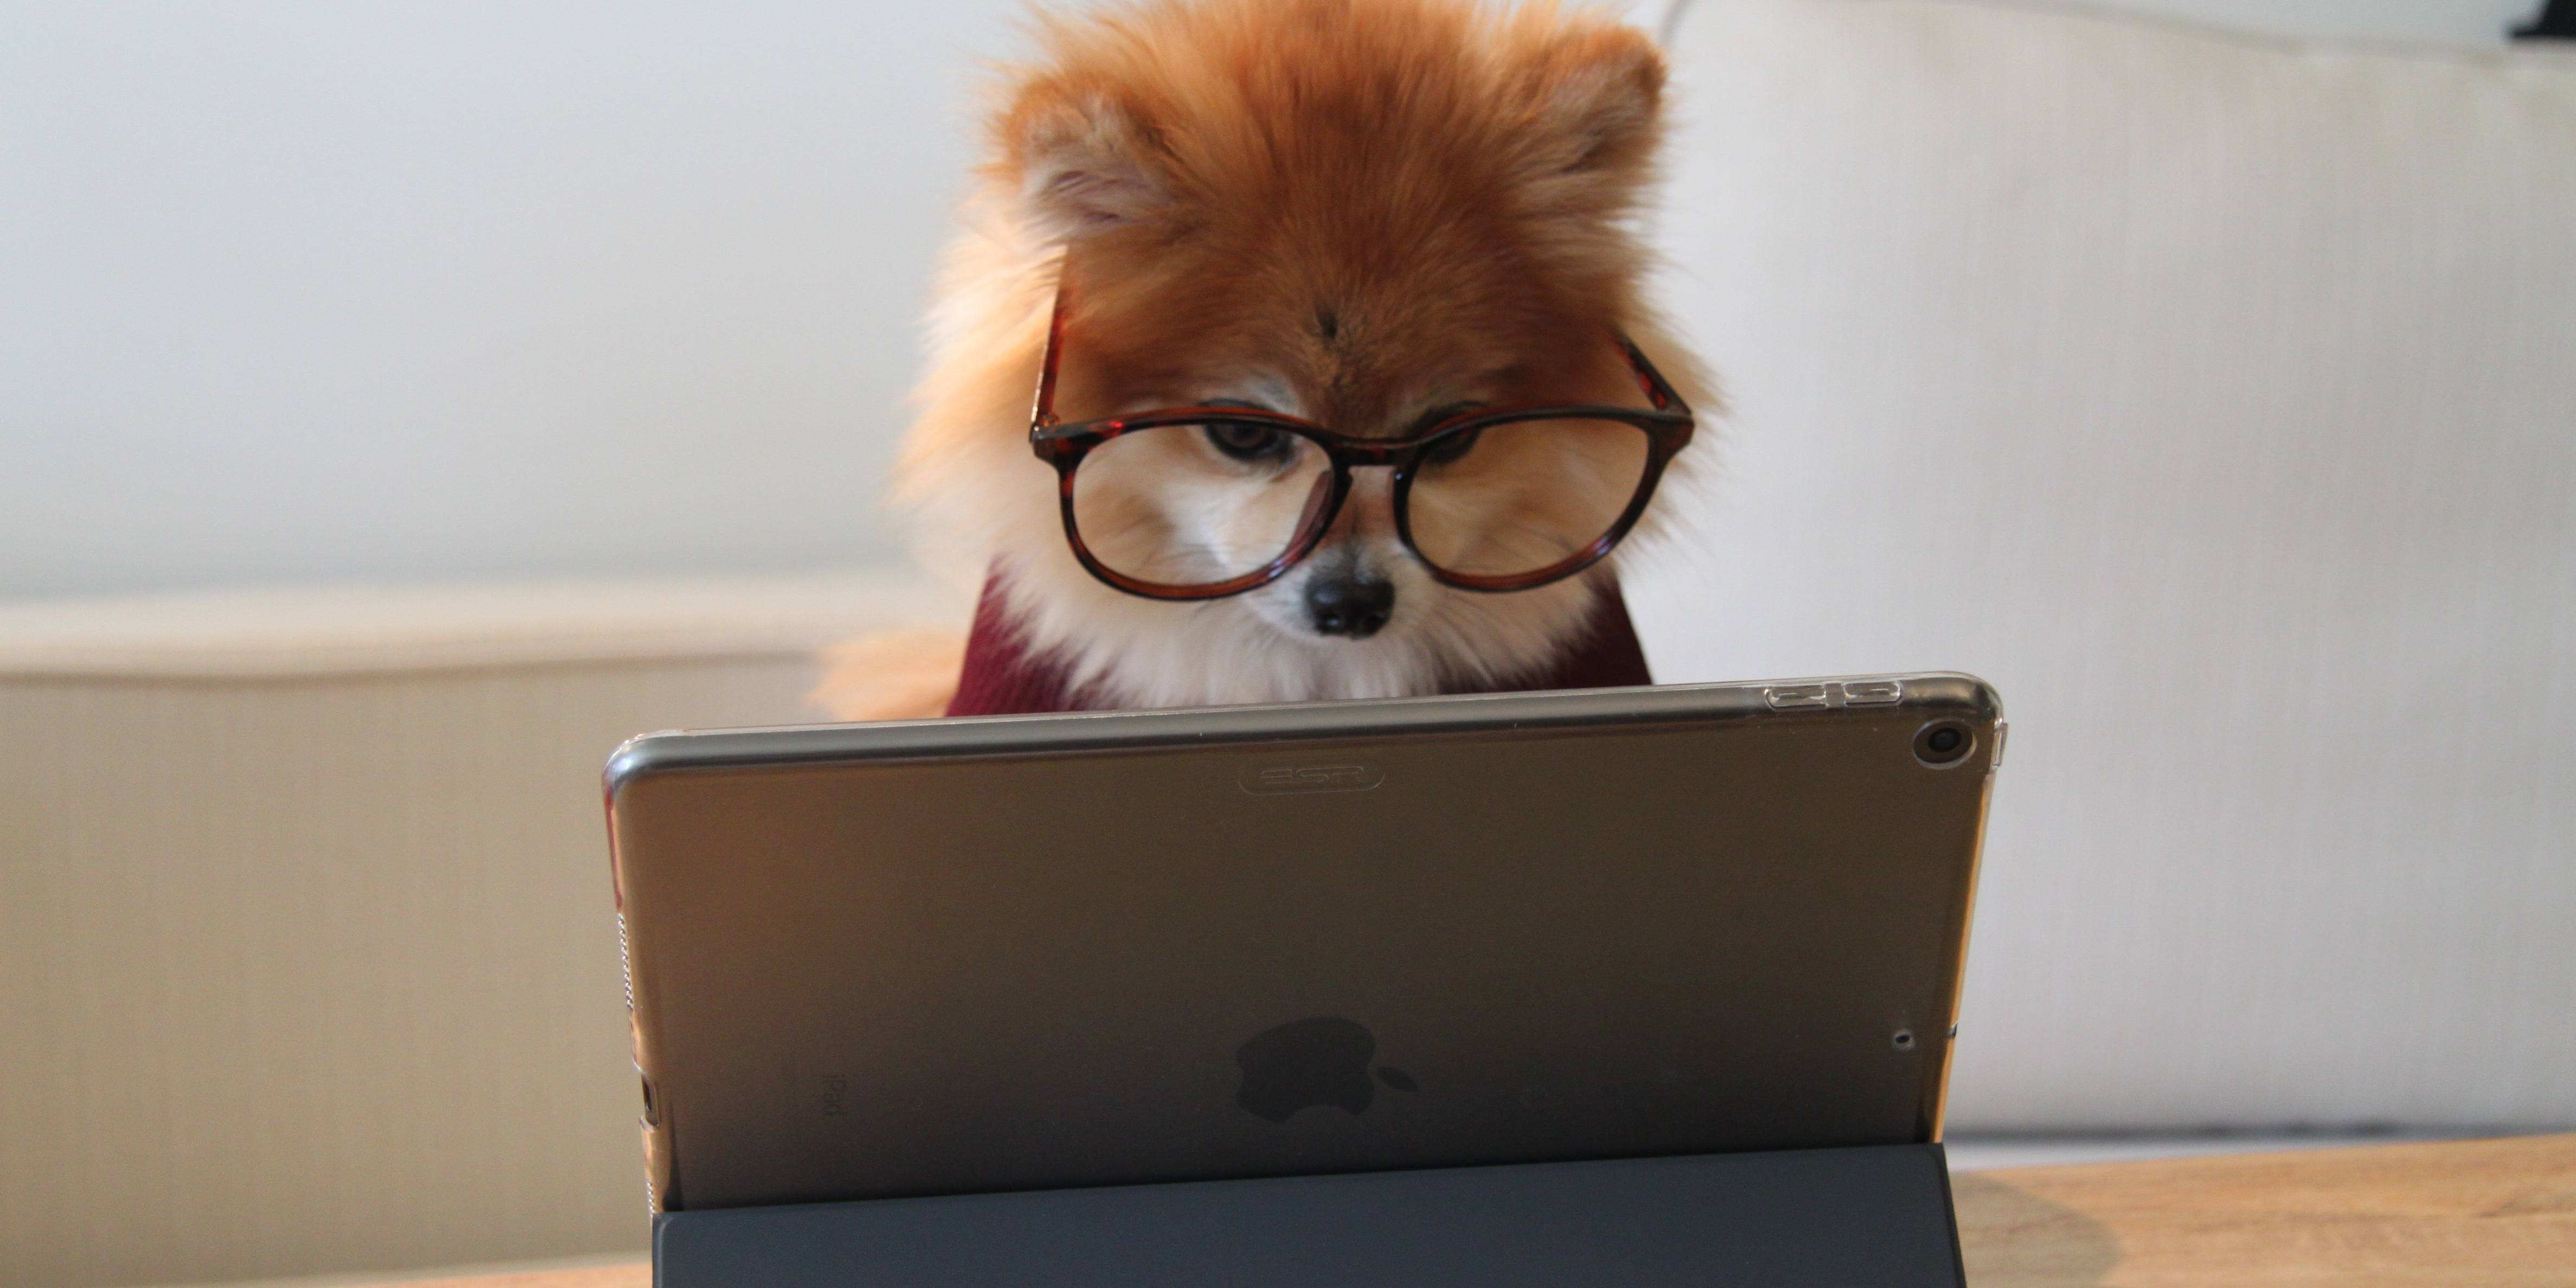 a dog wearing glasses and using an ipad